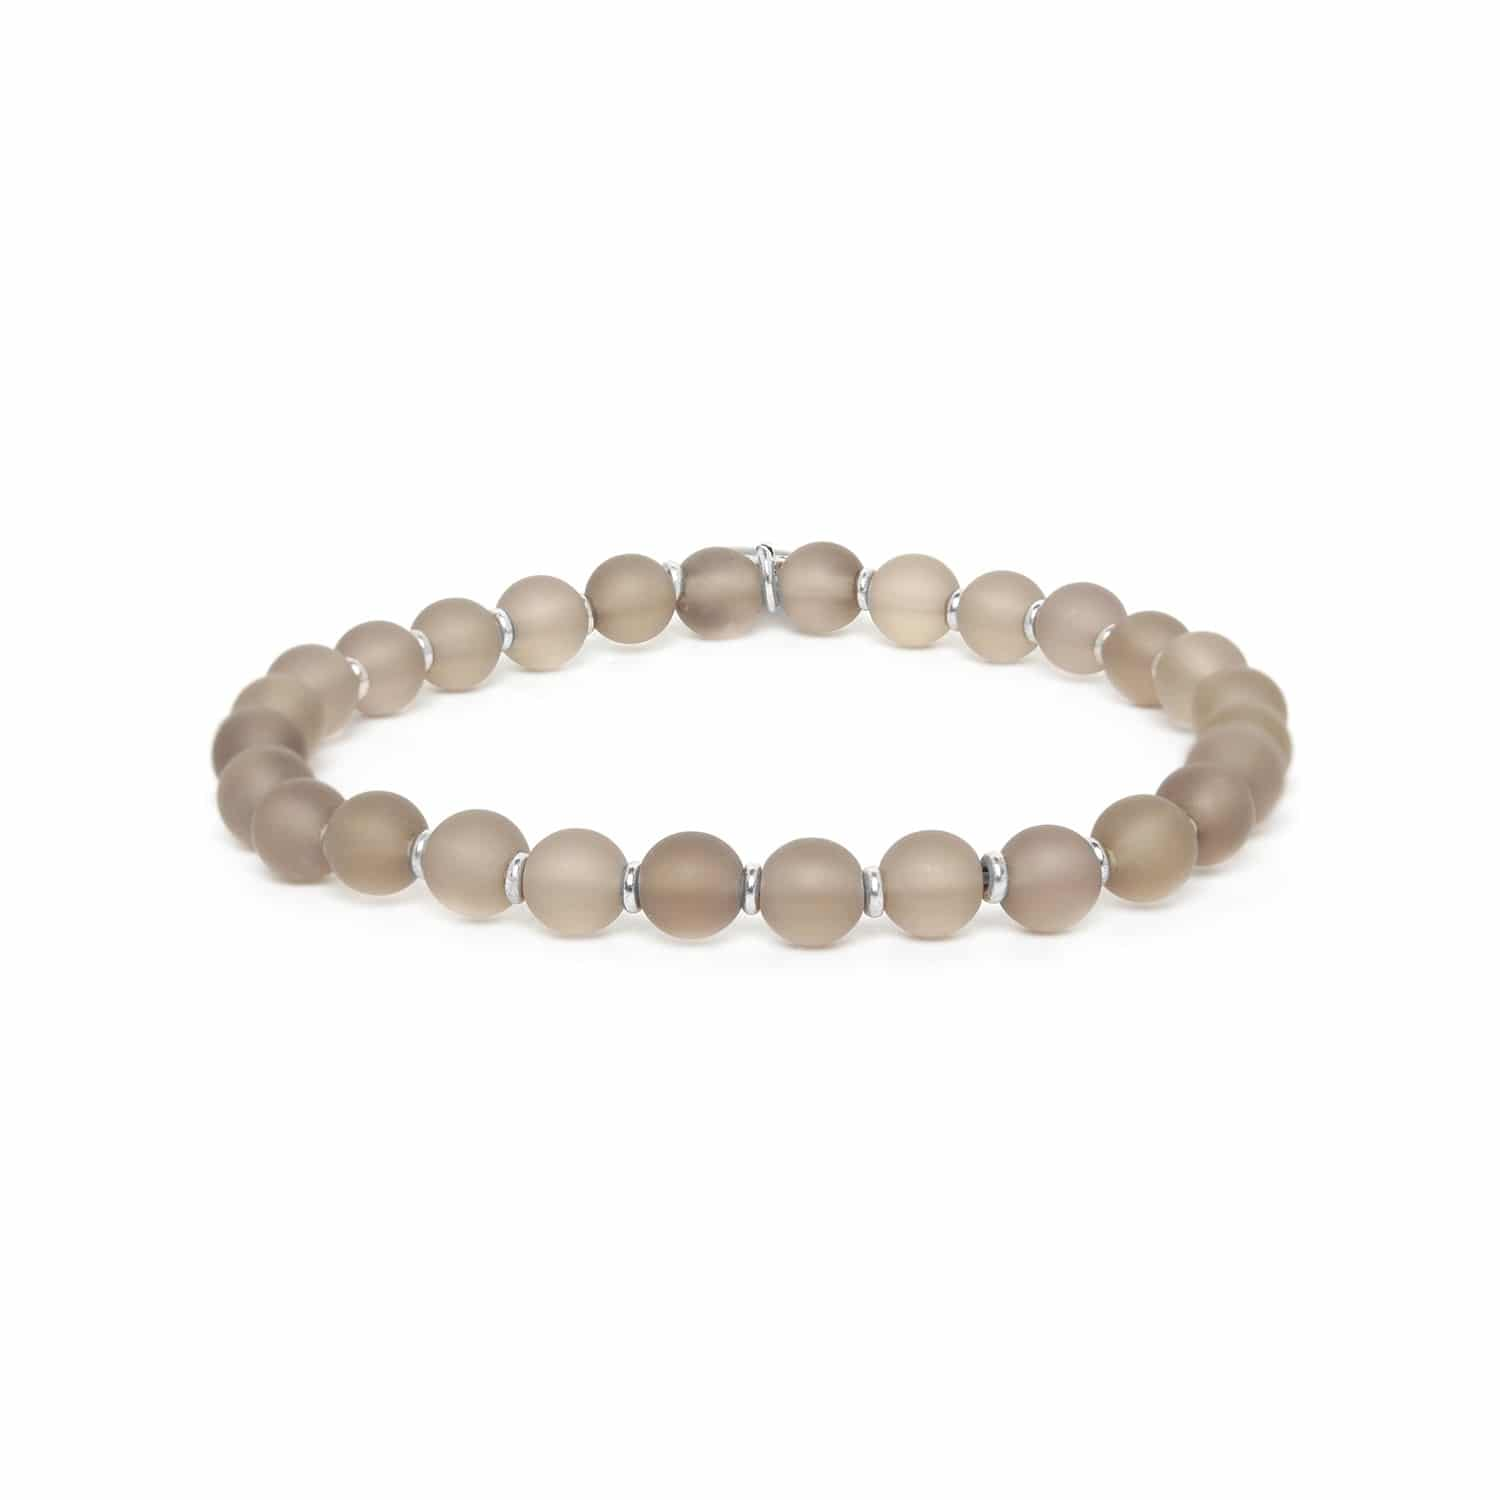 OMBRE ET LUMIERE smoky quartz round bead stretch bracelet